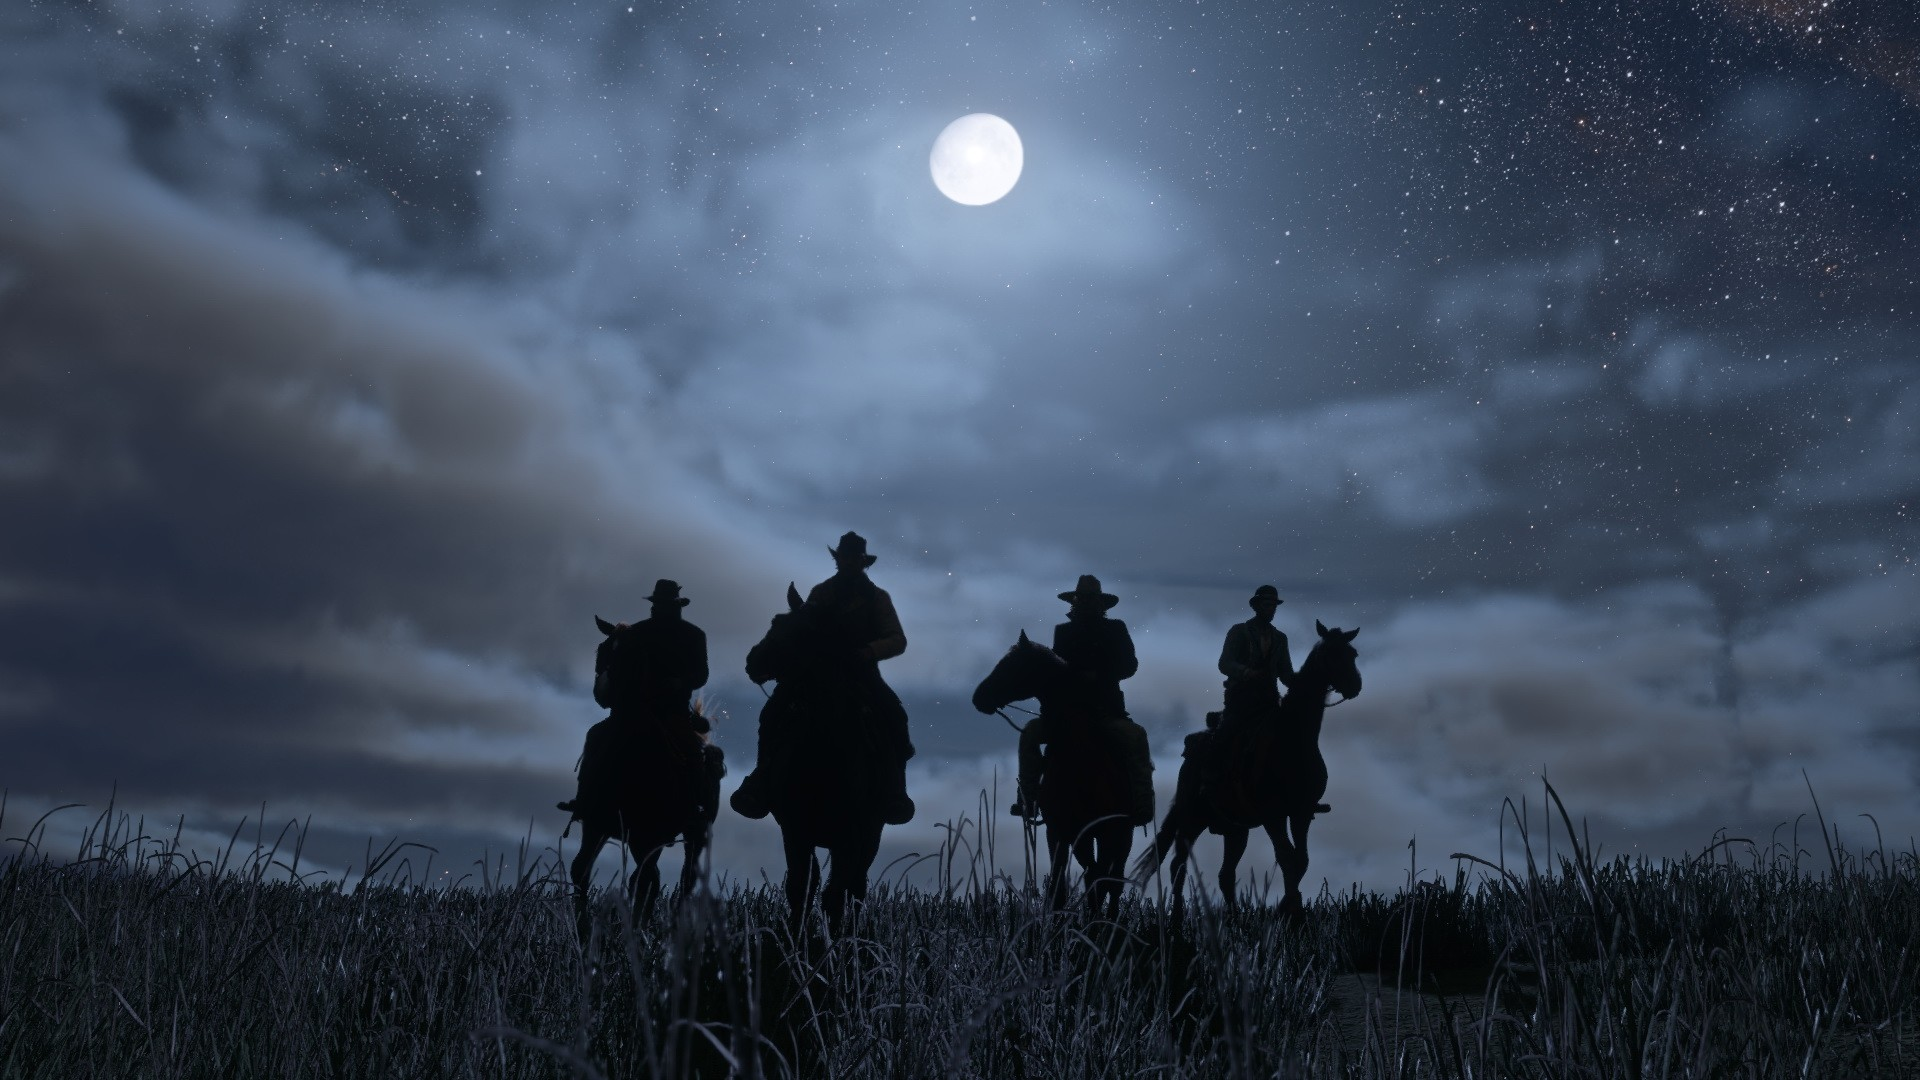 The release of the game Red Dead Redemption 2 postponed to 2018